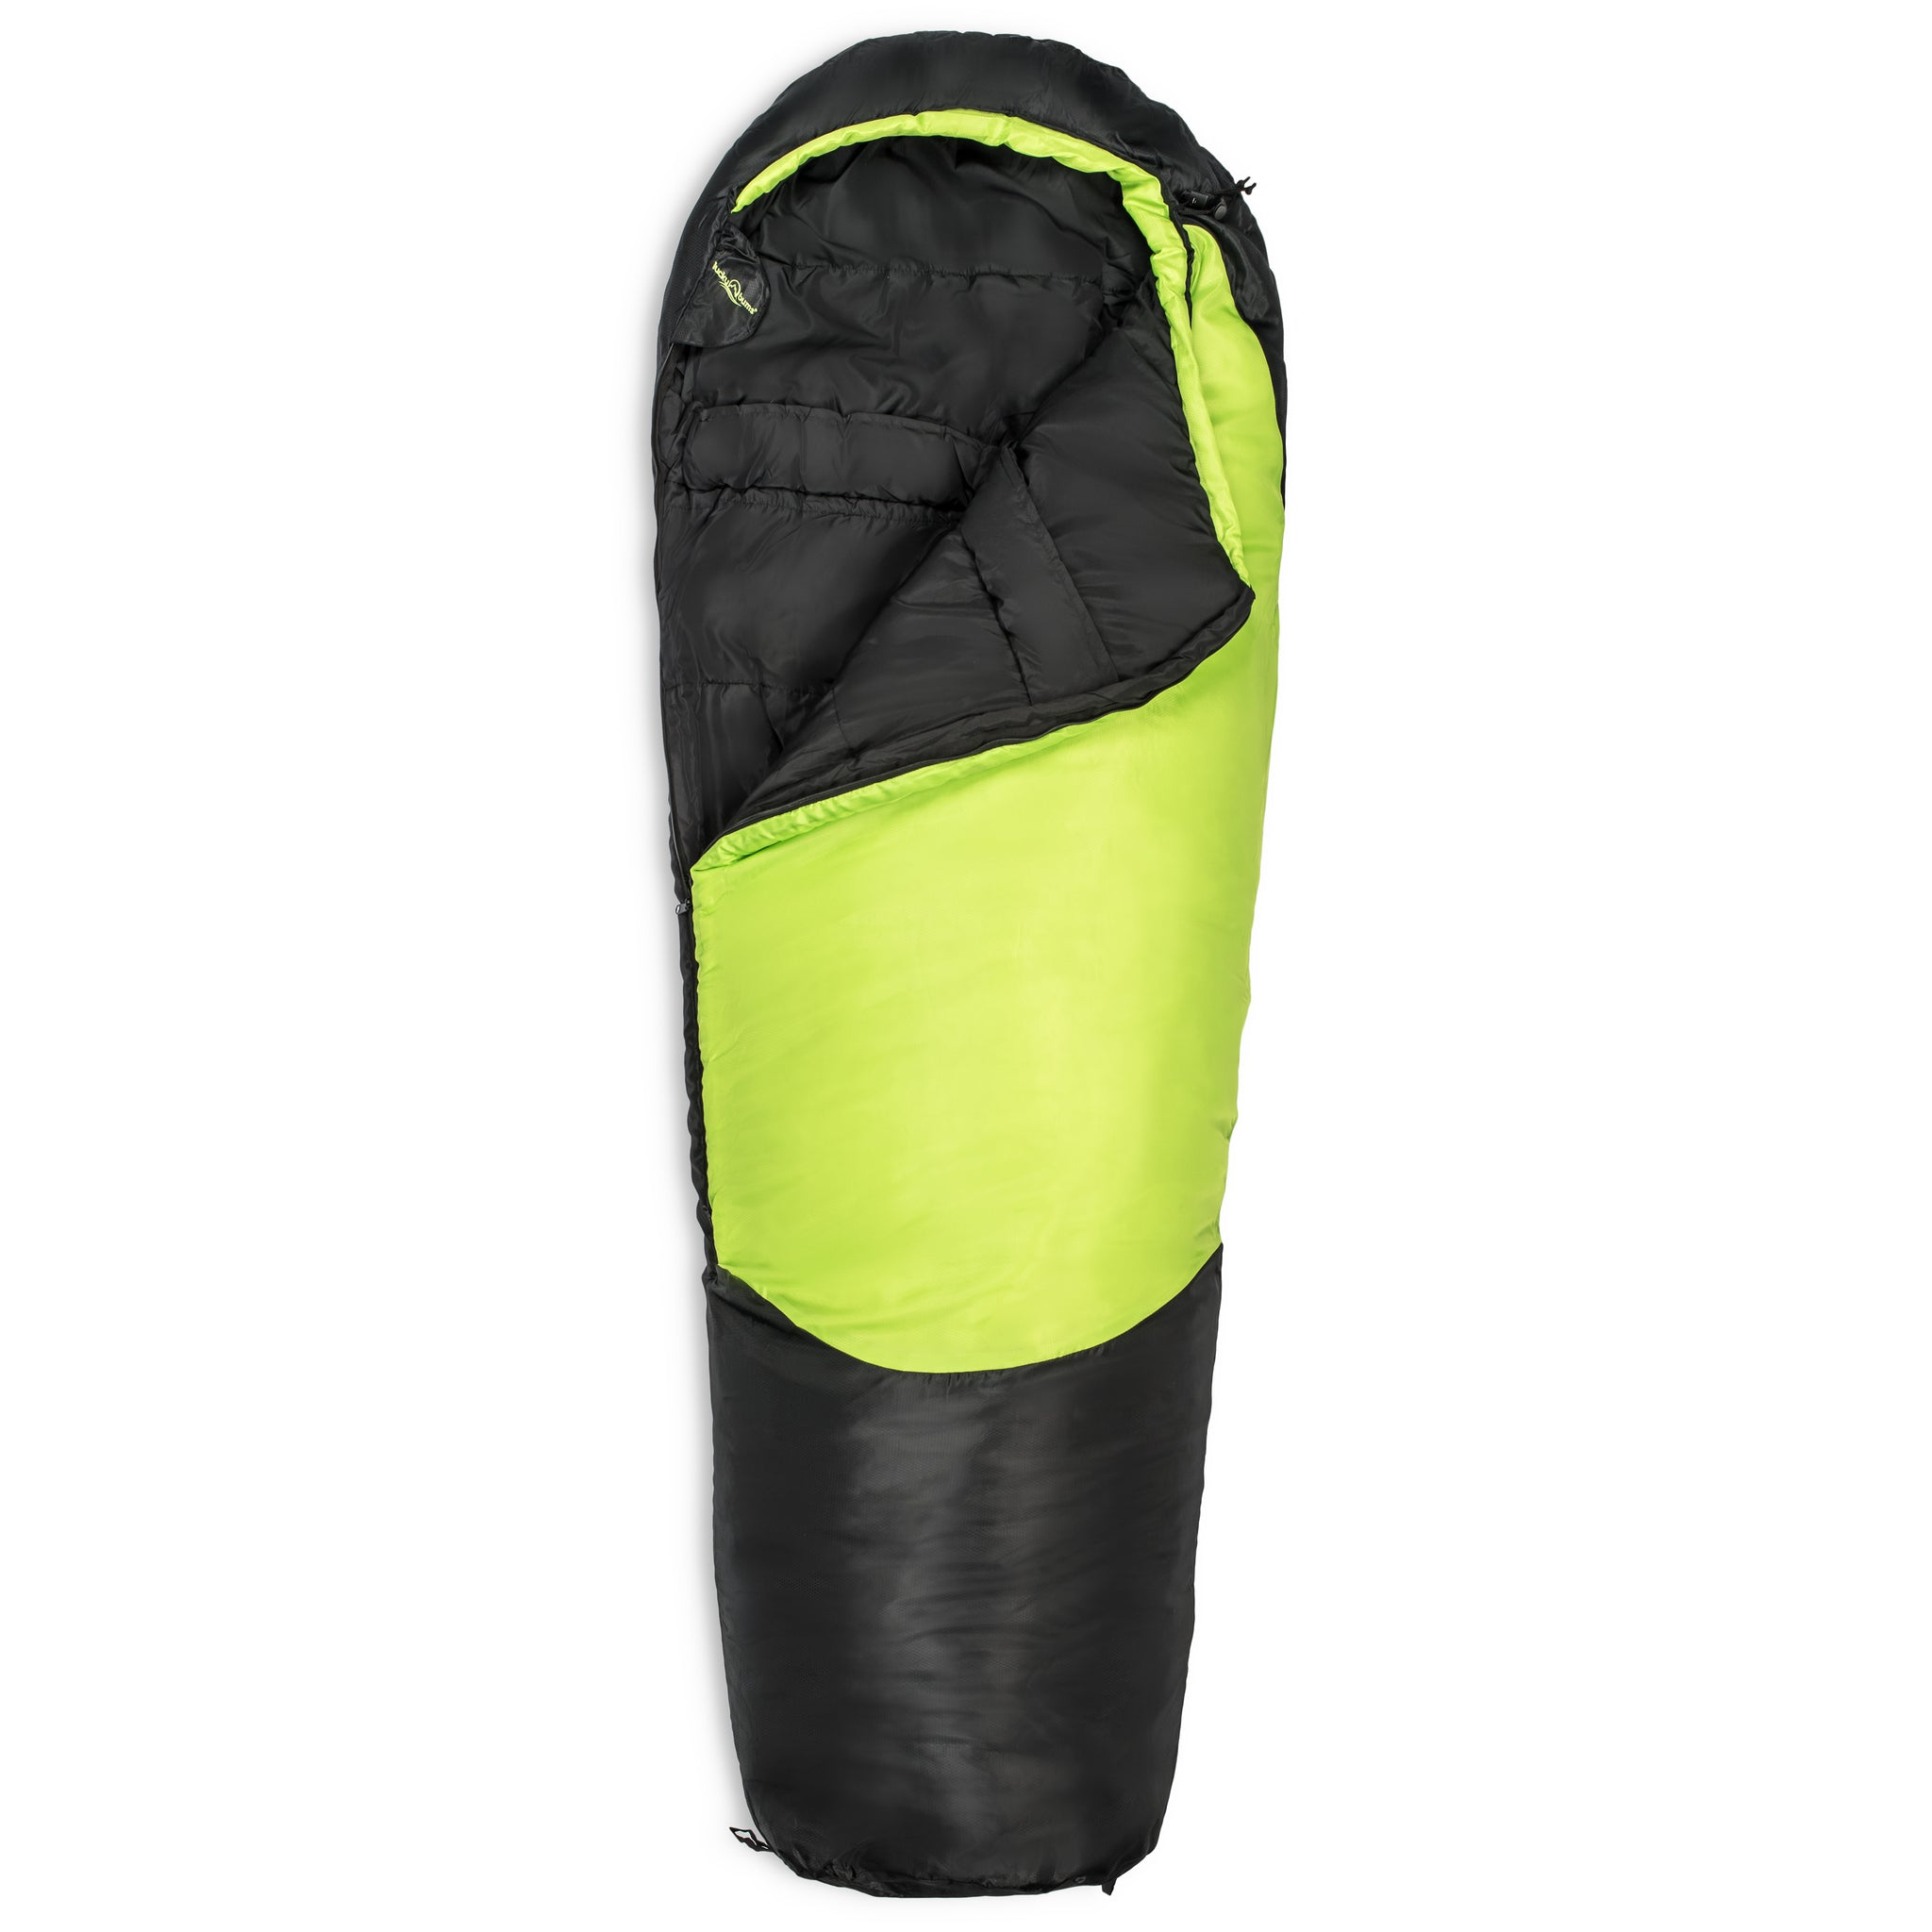 Lucky Bums Youth Serenity II 25F 4C Temperature Rated Mummy Style Sleeping Bag